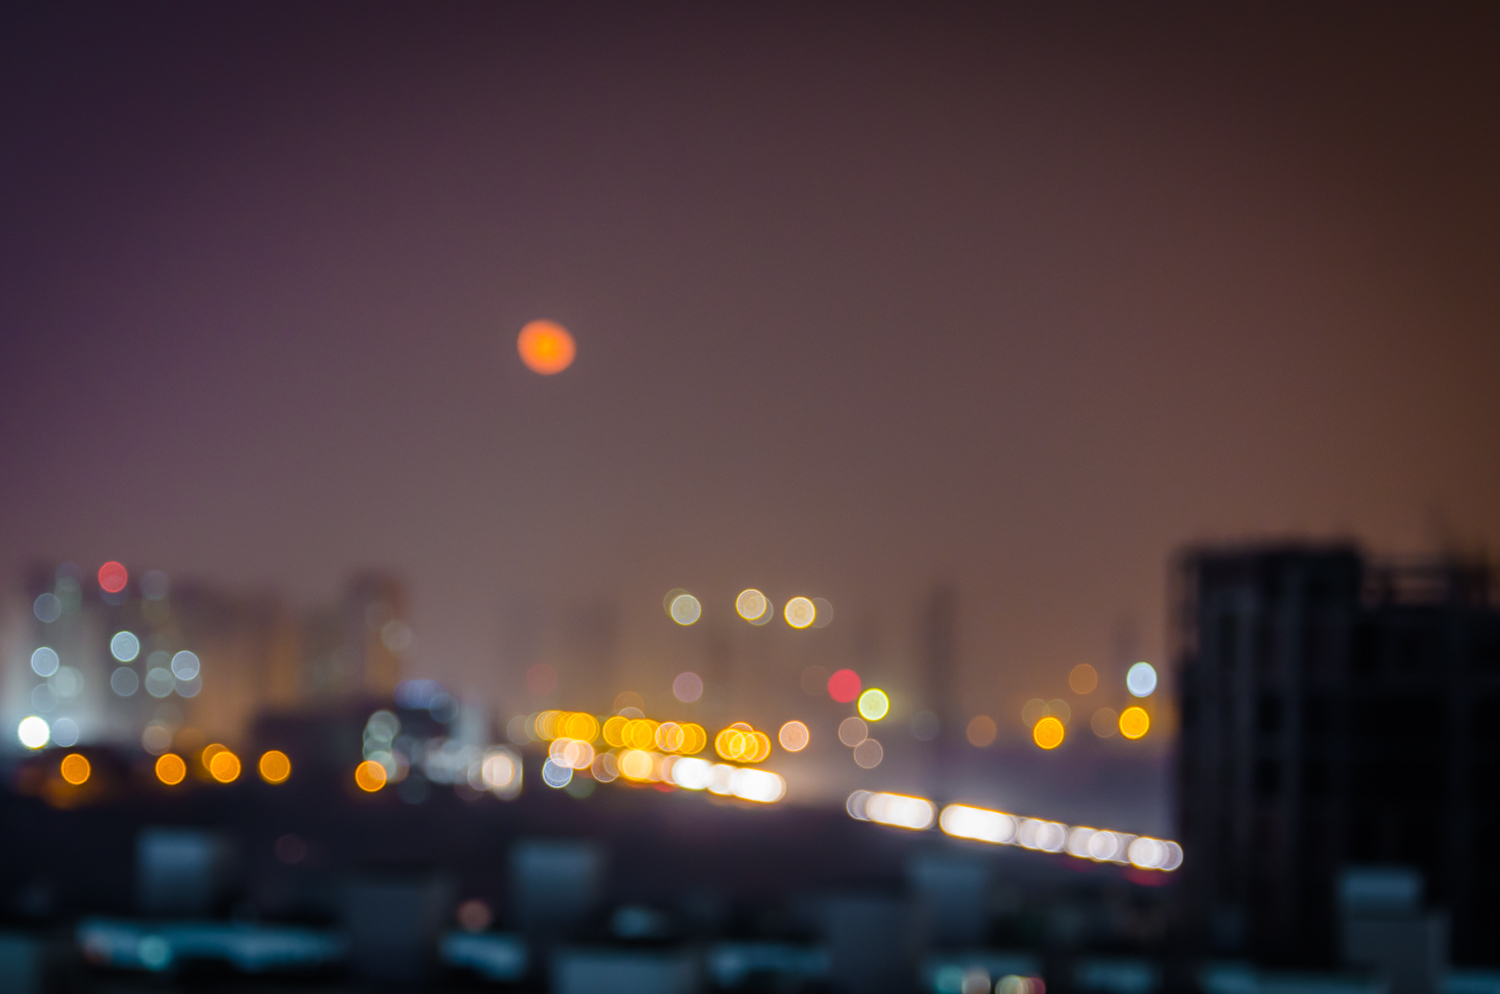 https://i0.wp.com/digital-photography-school.com/wp-content/uploads/2019/02/Abstract-Night-Photograph-Gurgaon.jpg?resize=1500%2C994&ssl=1